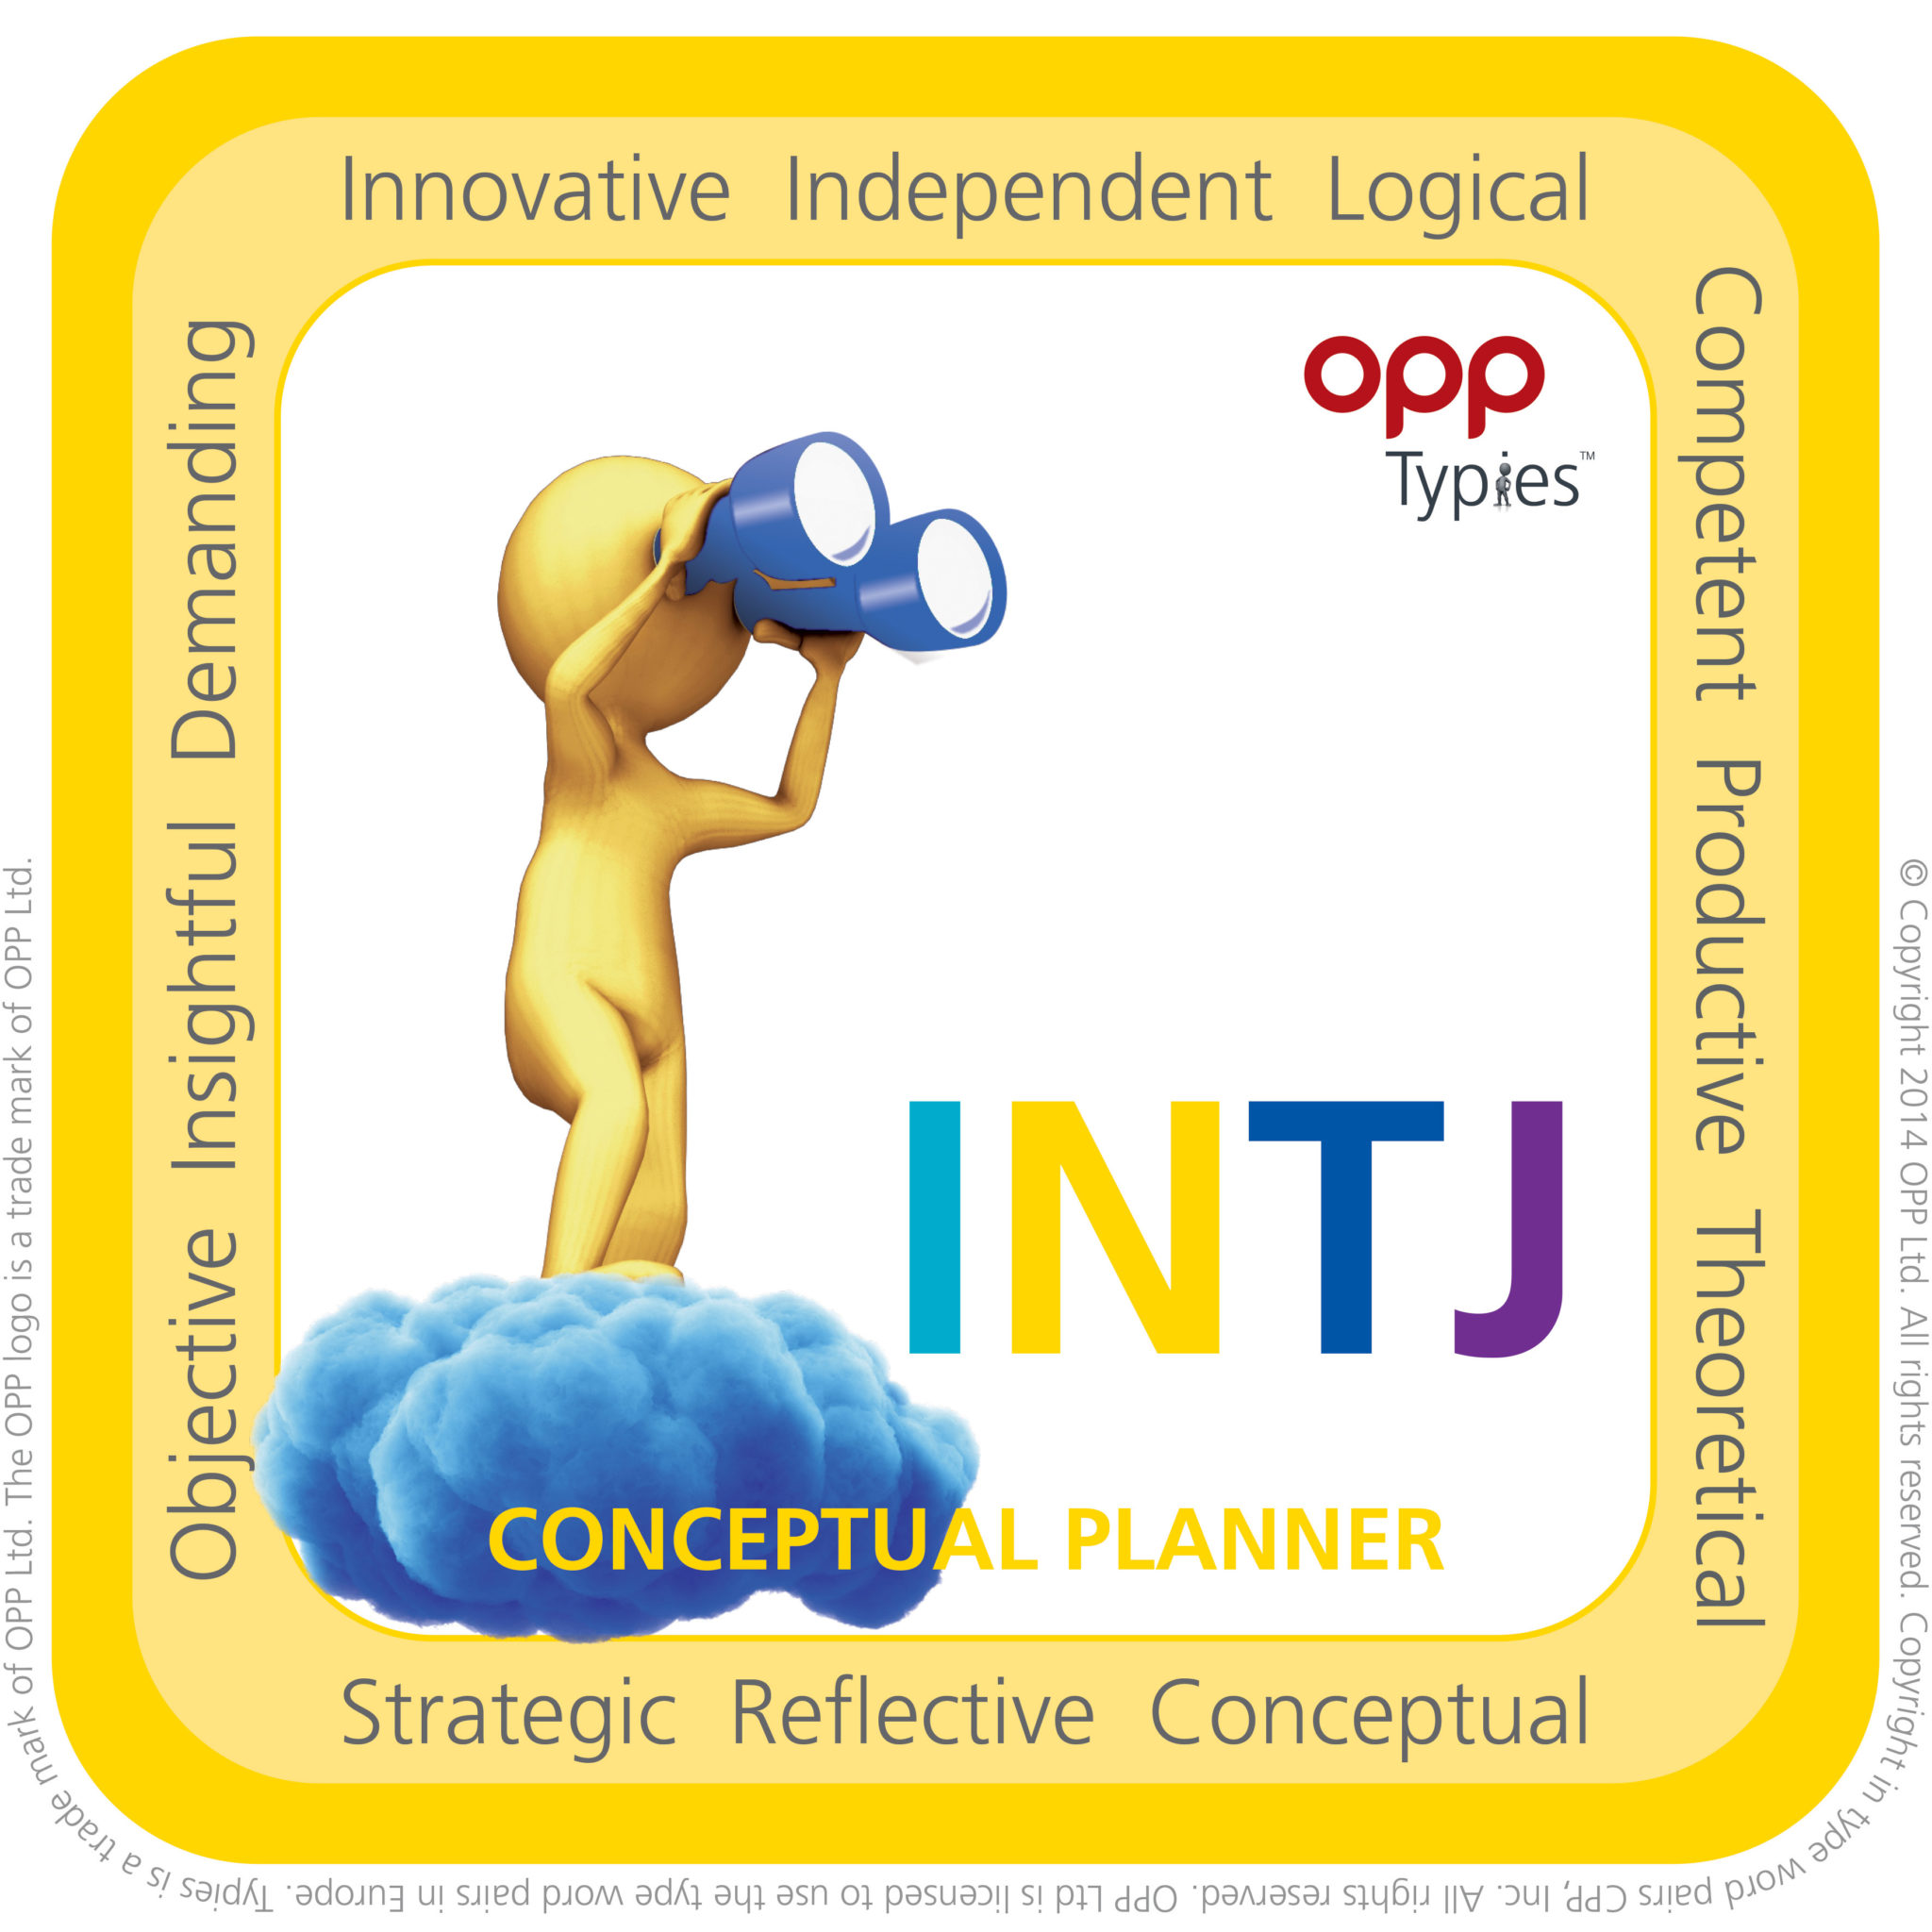 INTJ Typie, willerby hill hr, hr advice hull, mbti east yorkshire, mbti hull